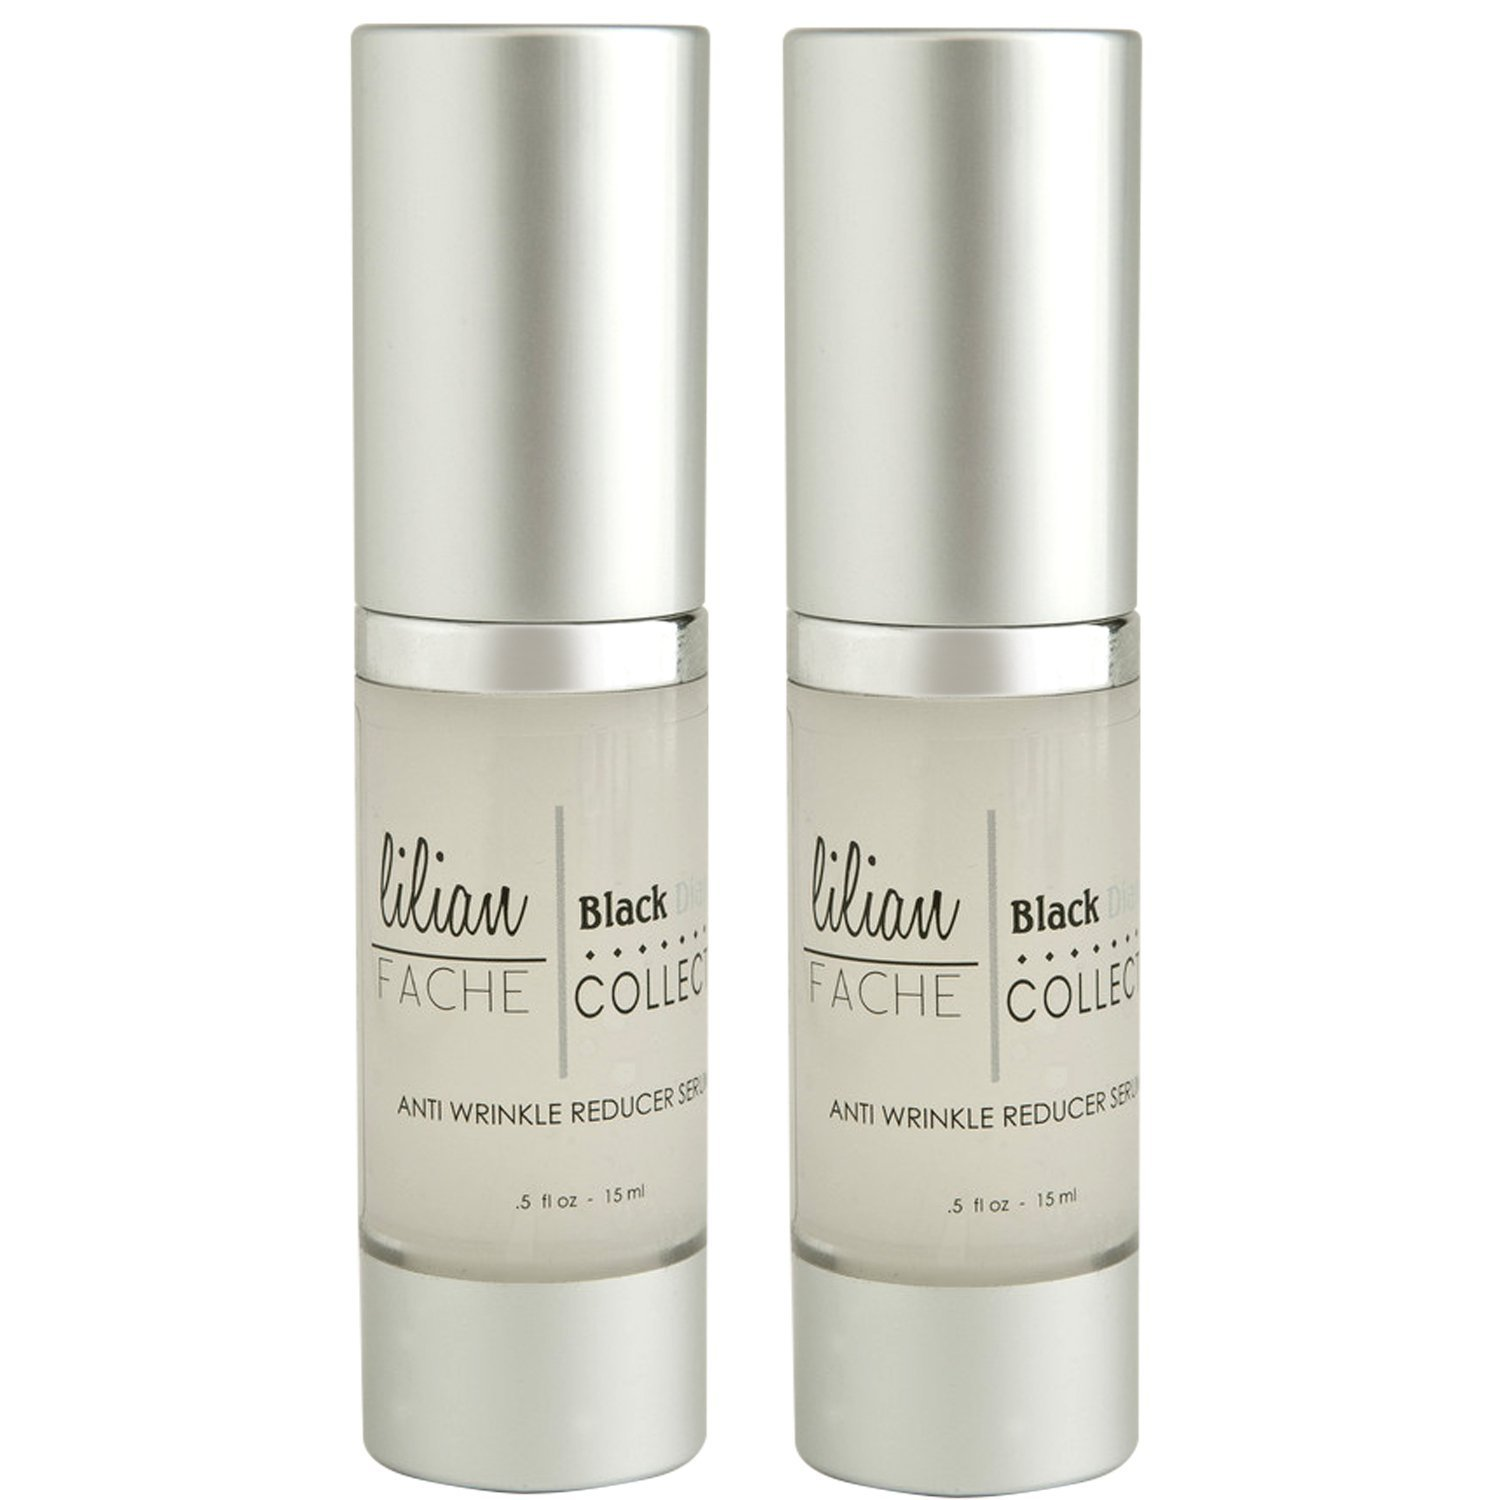 Anti Wrinkle Reducing Serum - By Lilian Fache - Anti Aging Serum - Wrinkle Reducer - Skin Rejuvenation for Preventing and Reducing Fine Lines and Wrinkles - Black Diamond Dust Infused - Beauty Skin Care Product - Collagen Restoring - Try This One of a Kind Anti Aging Wrinkle and Fine Line Reducer